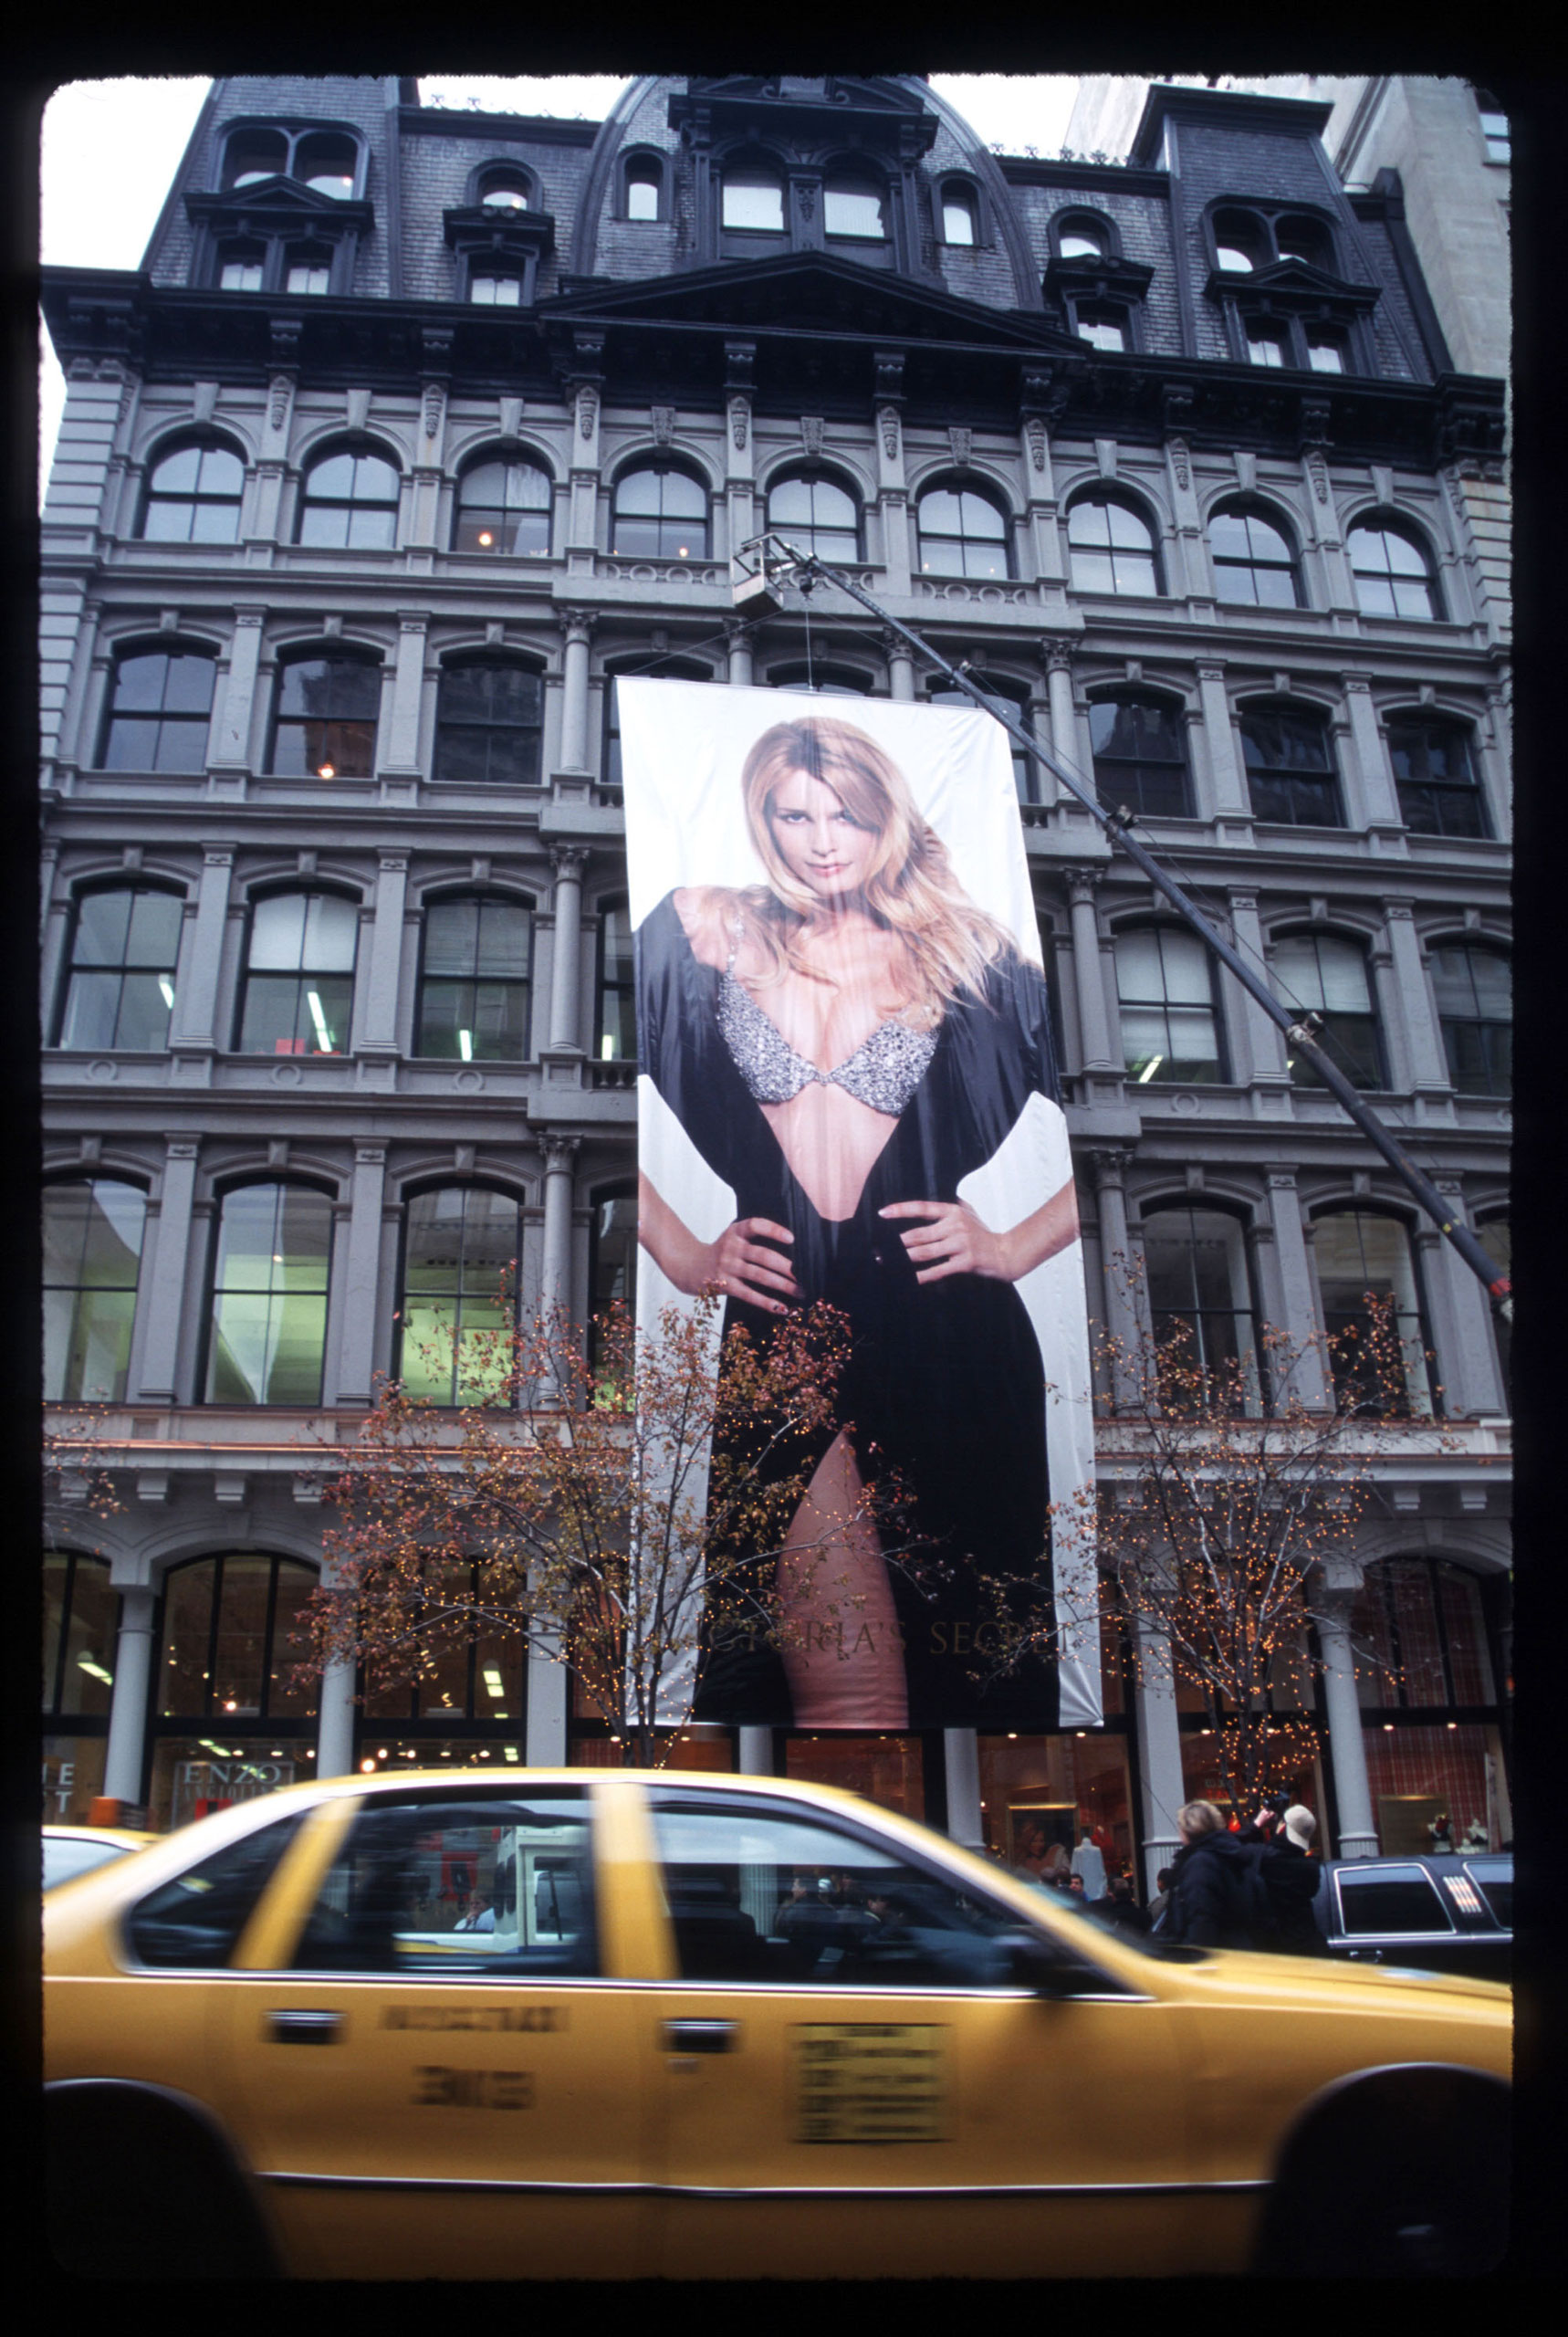 The Million Dollar Miracle Bra Launched with this five-story likeness of Claudia Schiffer on Dec. 4, 1996 in New York City, the diamond-encrusted push up bra was the first of Victoria Secret's yearly Fantasy Bras. The price tag on these luxury lingerie items has increased exponentially since then, and for the first time the company will debut two Fantasy Bras, valued at $2 million each, at the 2014 Victoria's Secret Fashion Show.